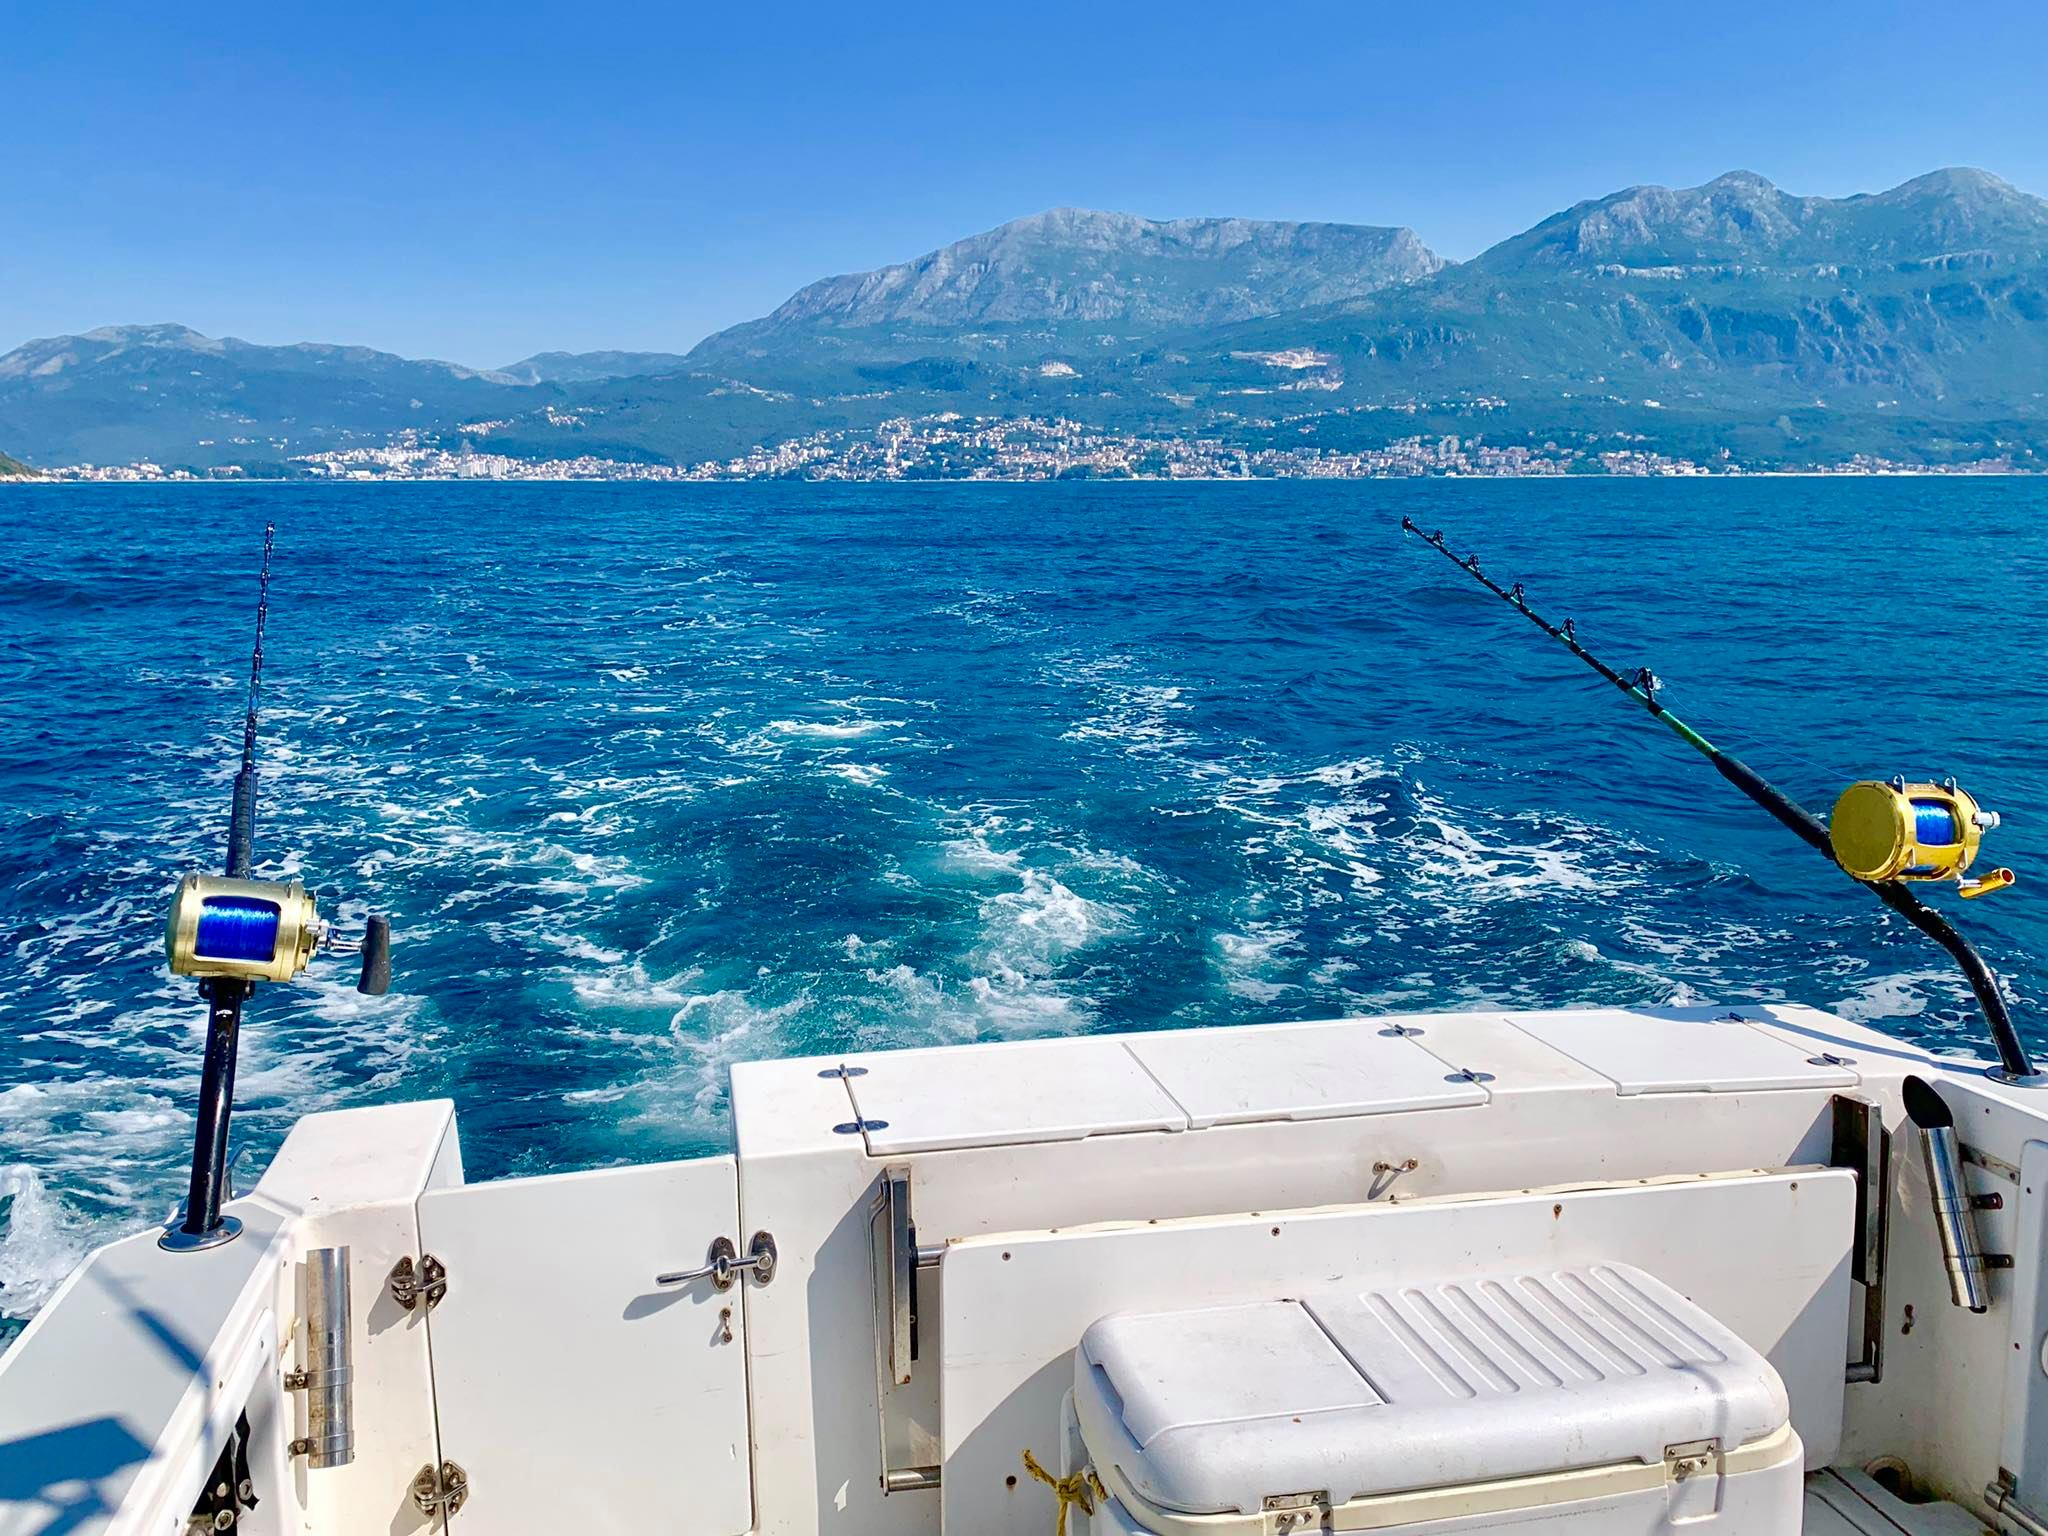 Expat Life in Montenegro Day 8 Fishing Trip to the Adriatic Sea.jpg